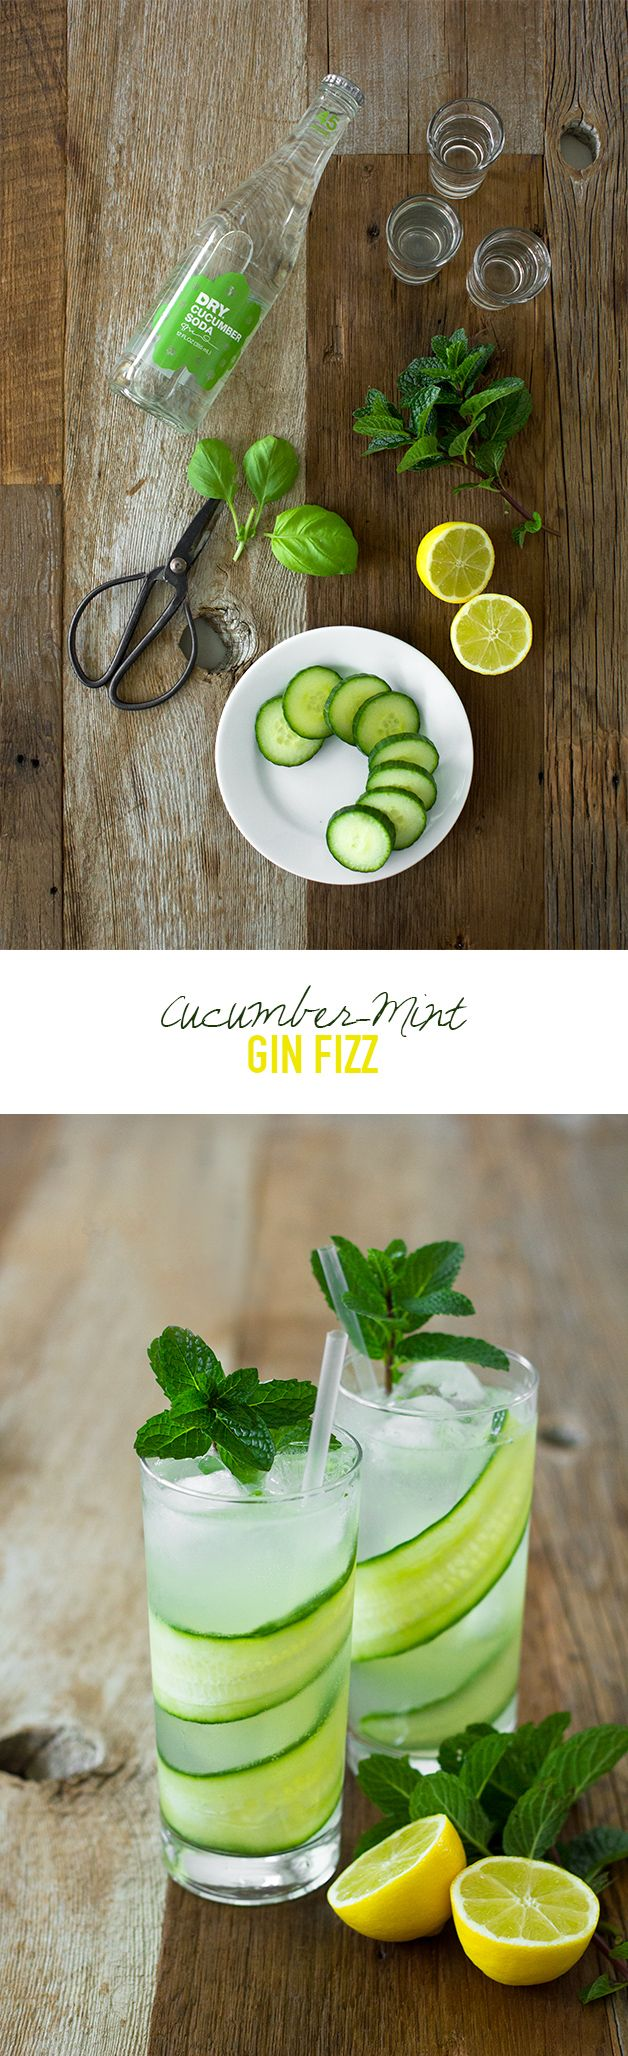 Cucumber-Mint Gin Fizz - a crisp, refreshing spin on the gin fizz with ...